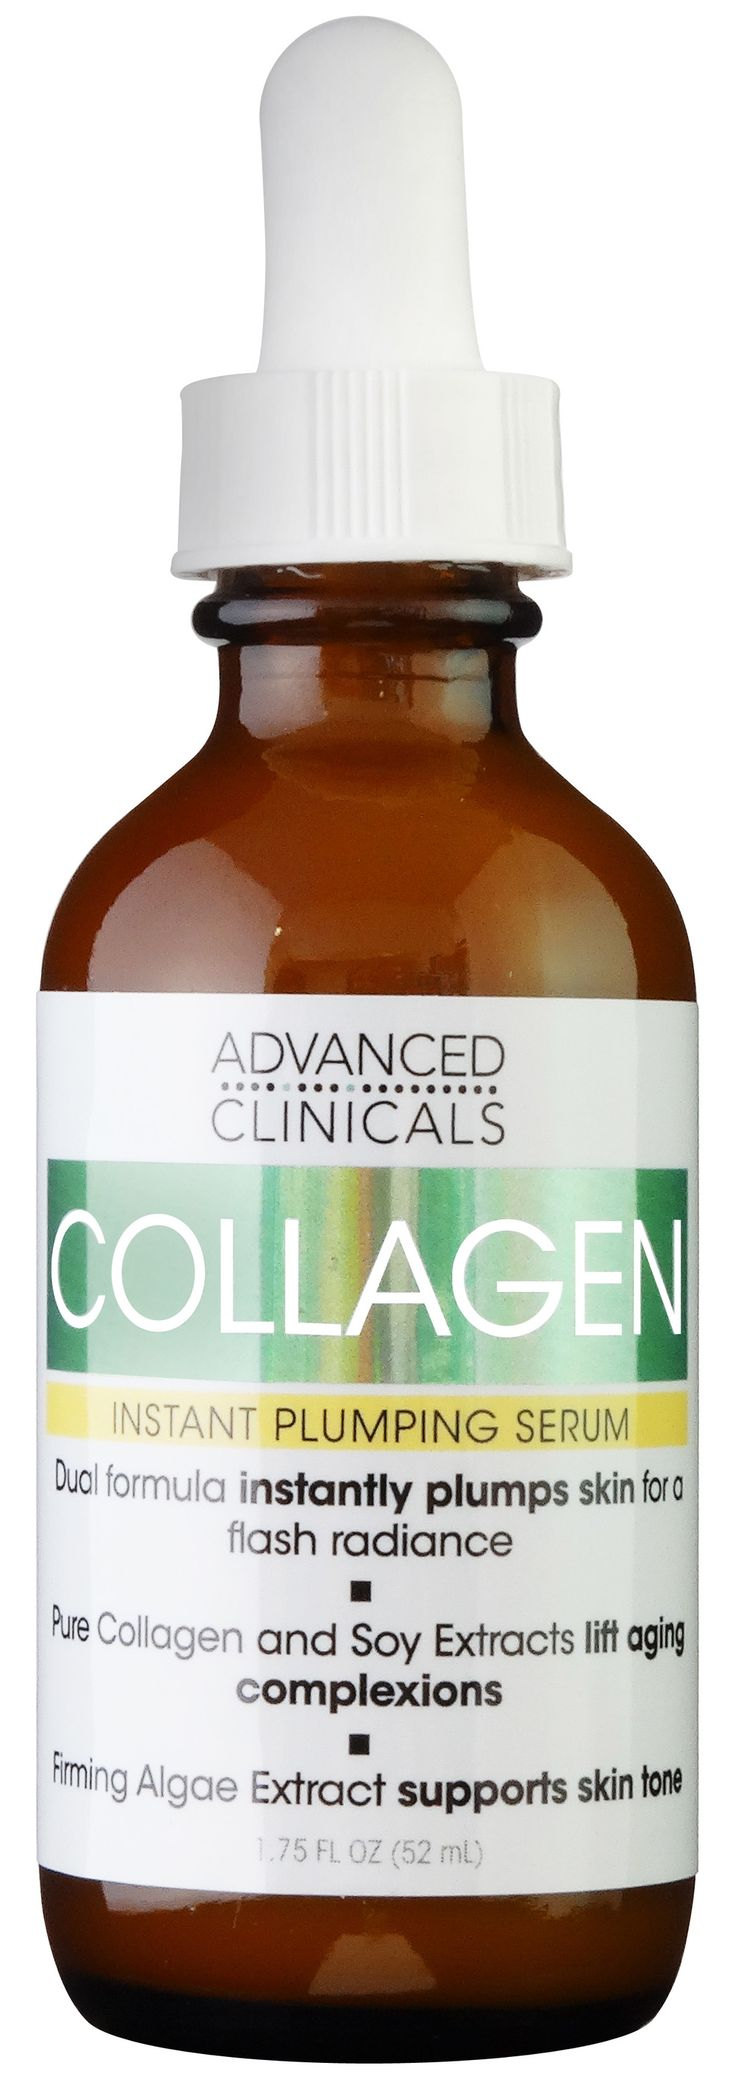 Advanced Clinicals Collagen Serum supports the natural production of  collagen in the epidermis. After using this face serum, your skin will look  plumper and firmer than ever before. Especially helpful for lip lines,  advanced formula will visibly restore volume to crevices. Powerful Soy  Complex diminishes the look of crepe-like skin. Transform yourself and your  skin with Collagen Instant Plumping Serum for a youthful glow. Soy Extracts  target sagging, lost elasticity and facial lines…